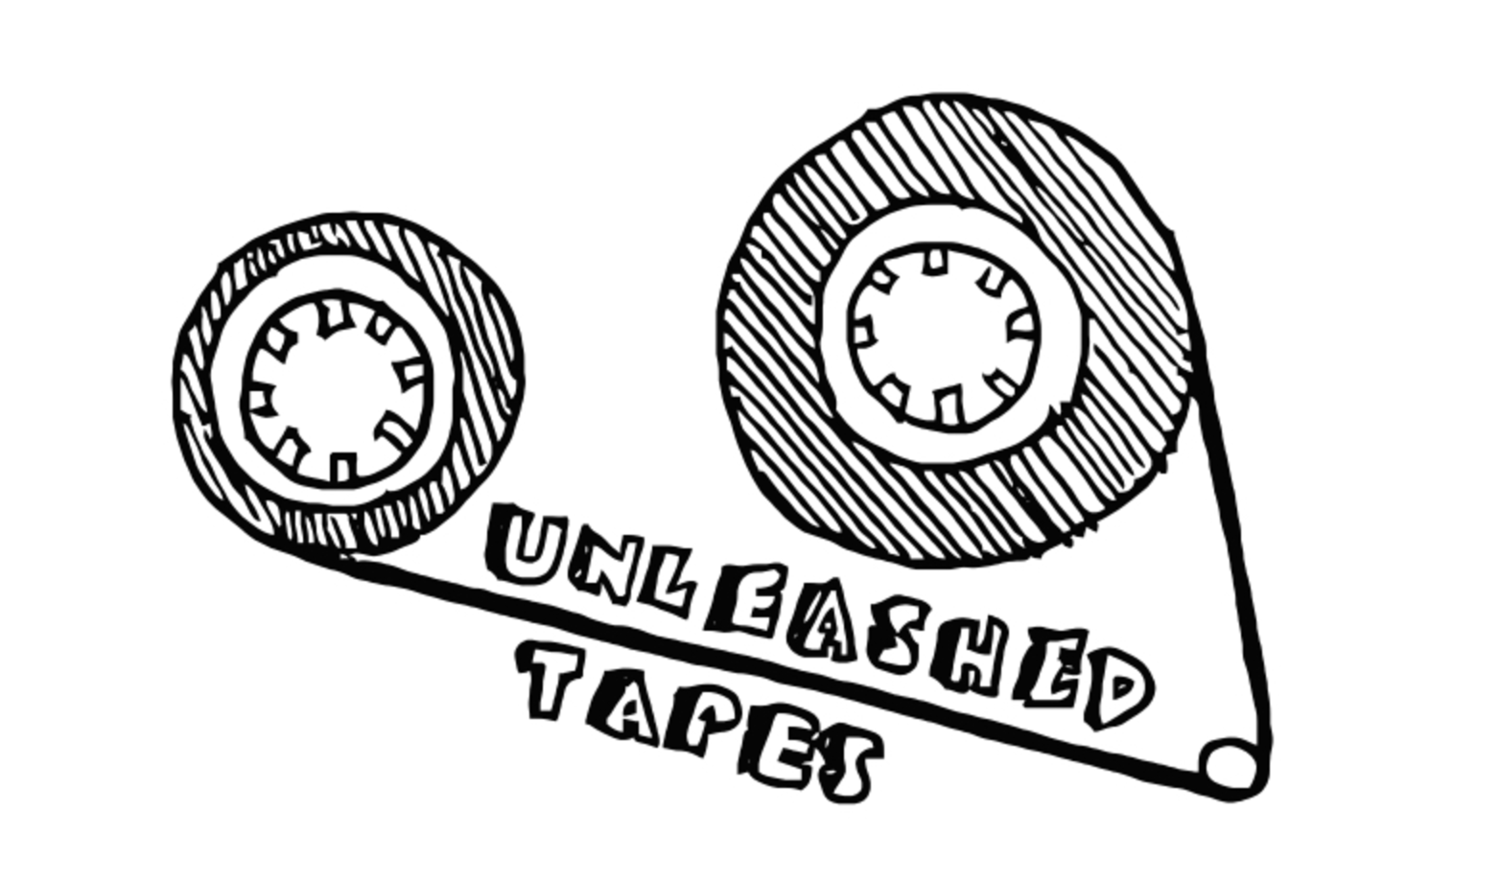 UNLEASHED TAPES